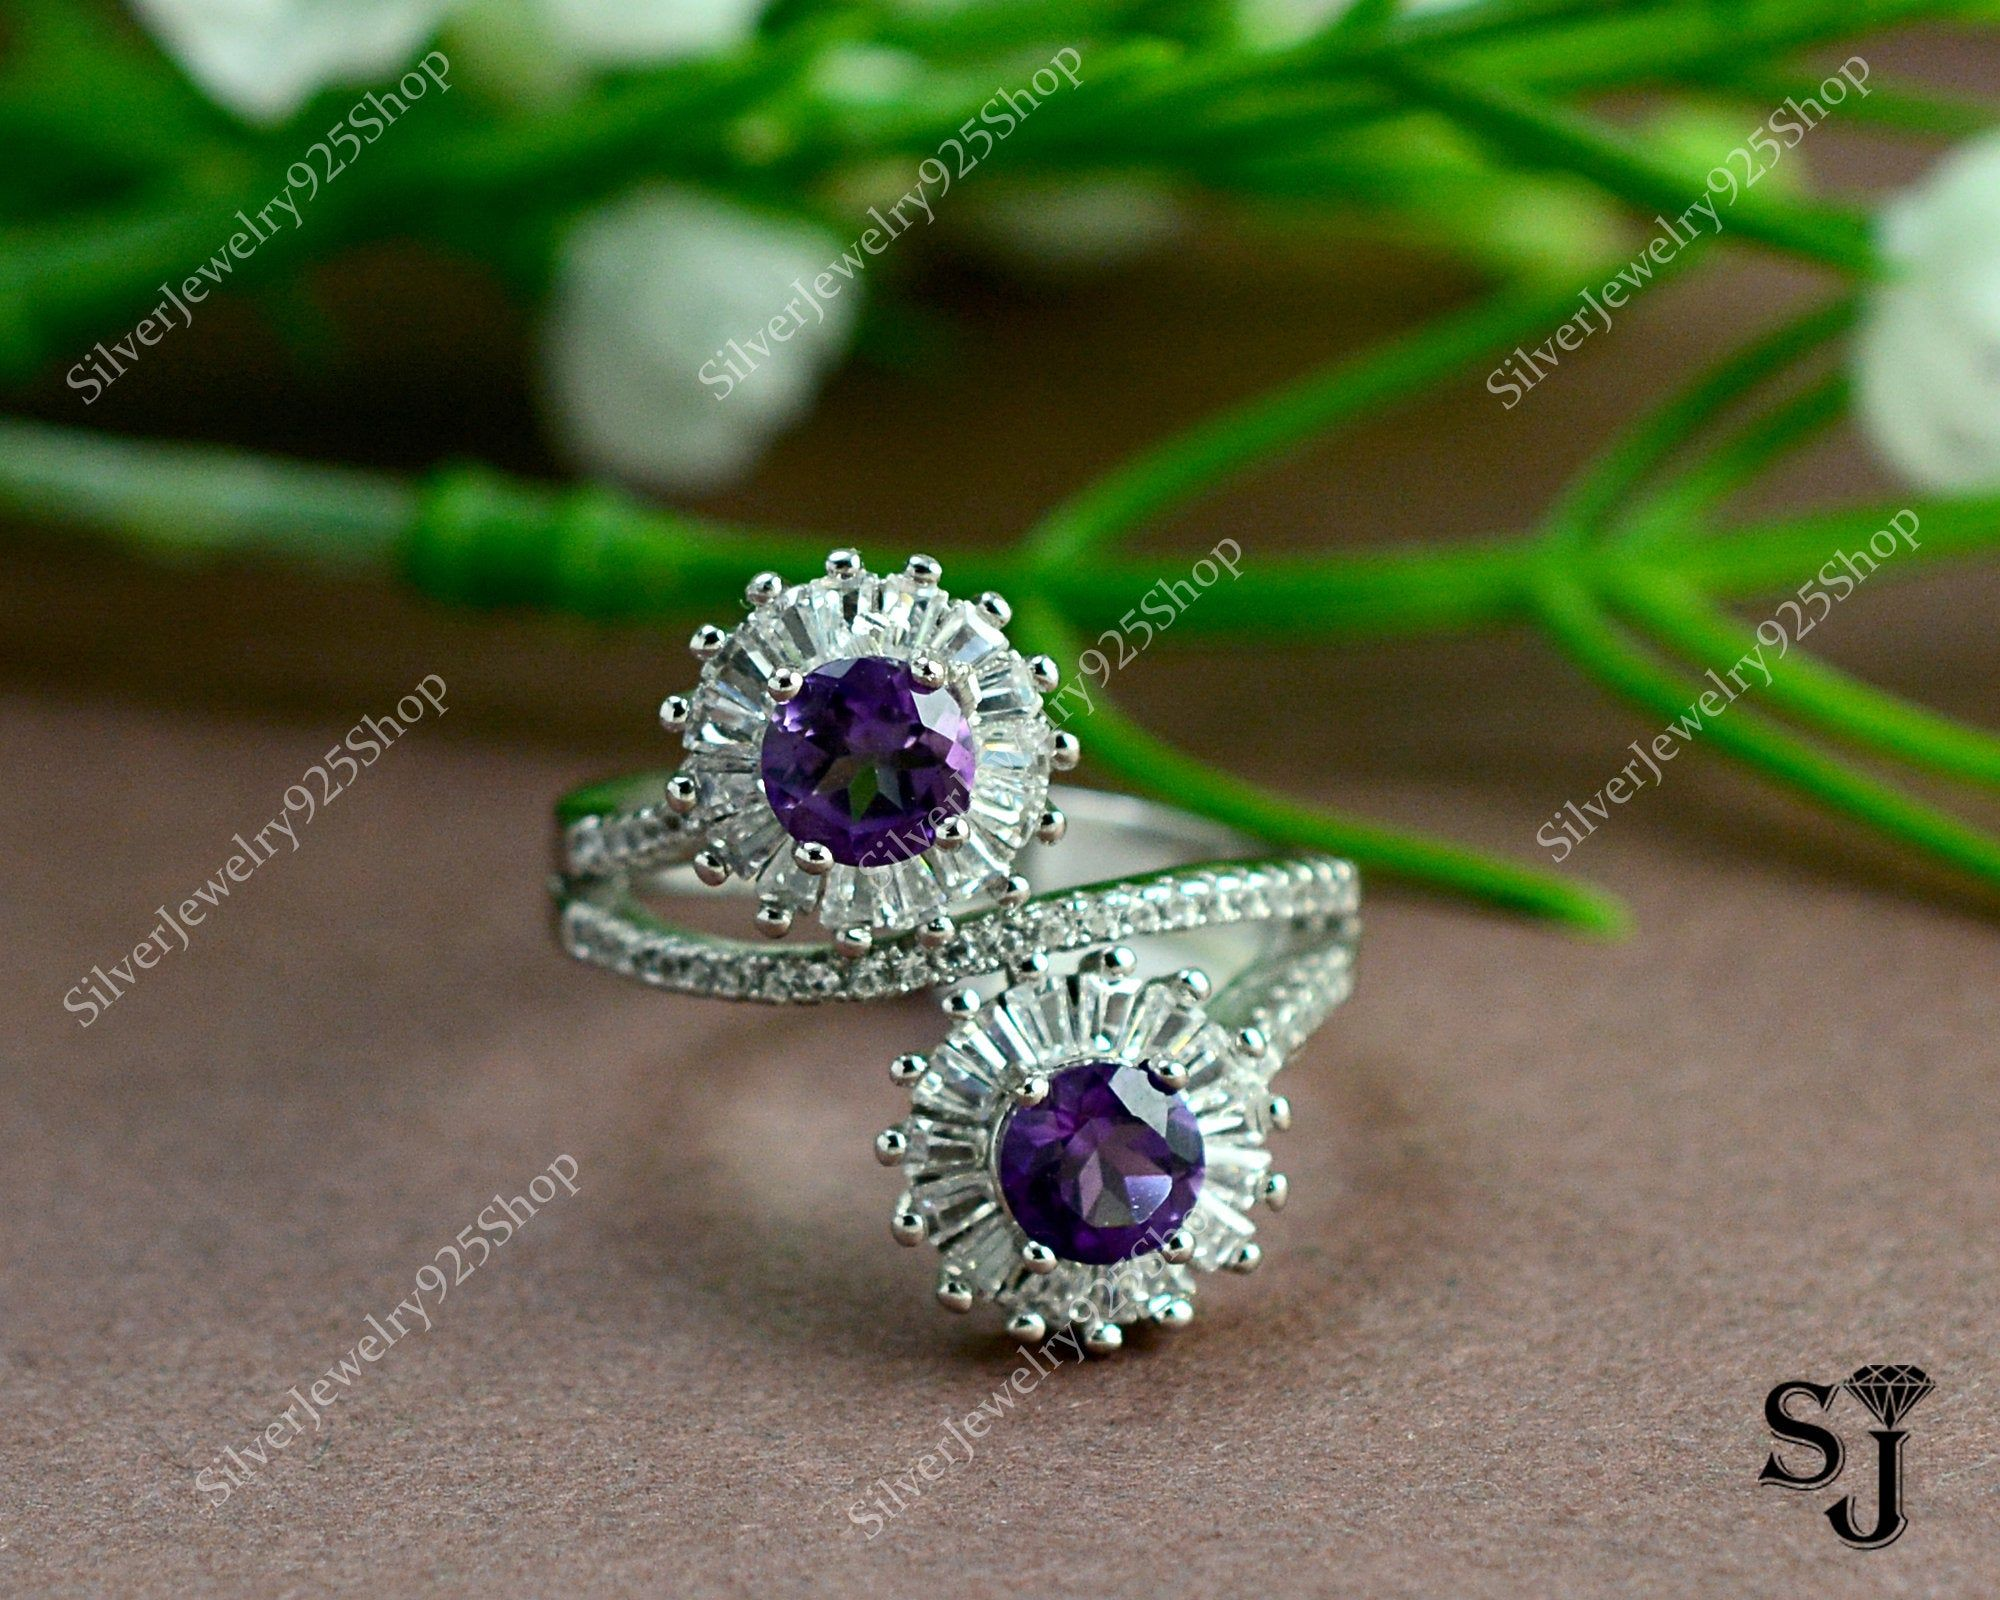 Natural Amethyst Ring February Birthstone 925 Sterling Silver Personalized Handmade Silver Jewelry Gift For Him Statement Ring